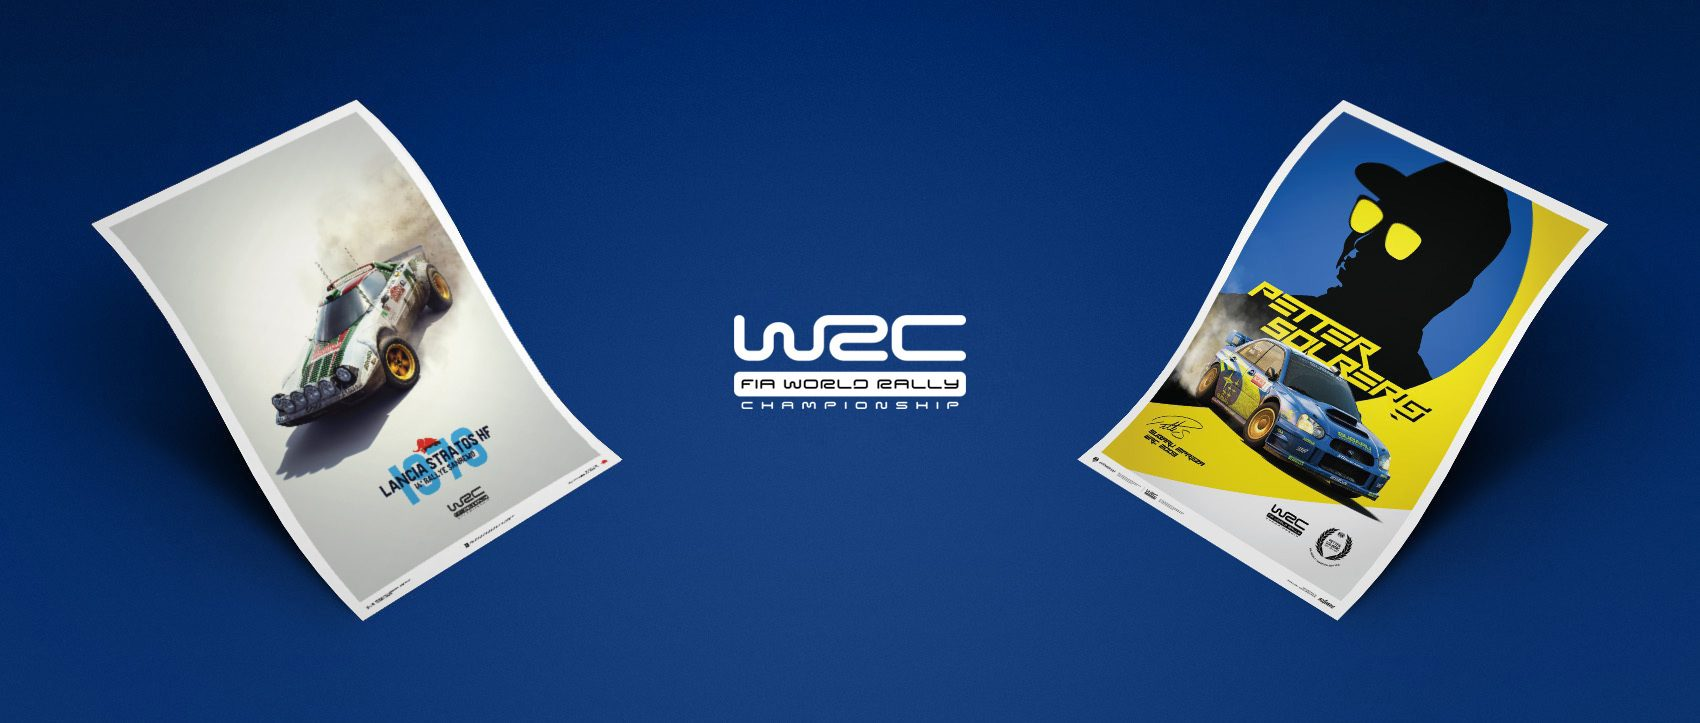 With an eye on Rallying: Automobilist in partnership with WRC